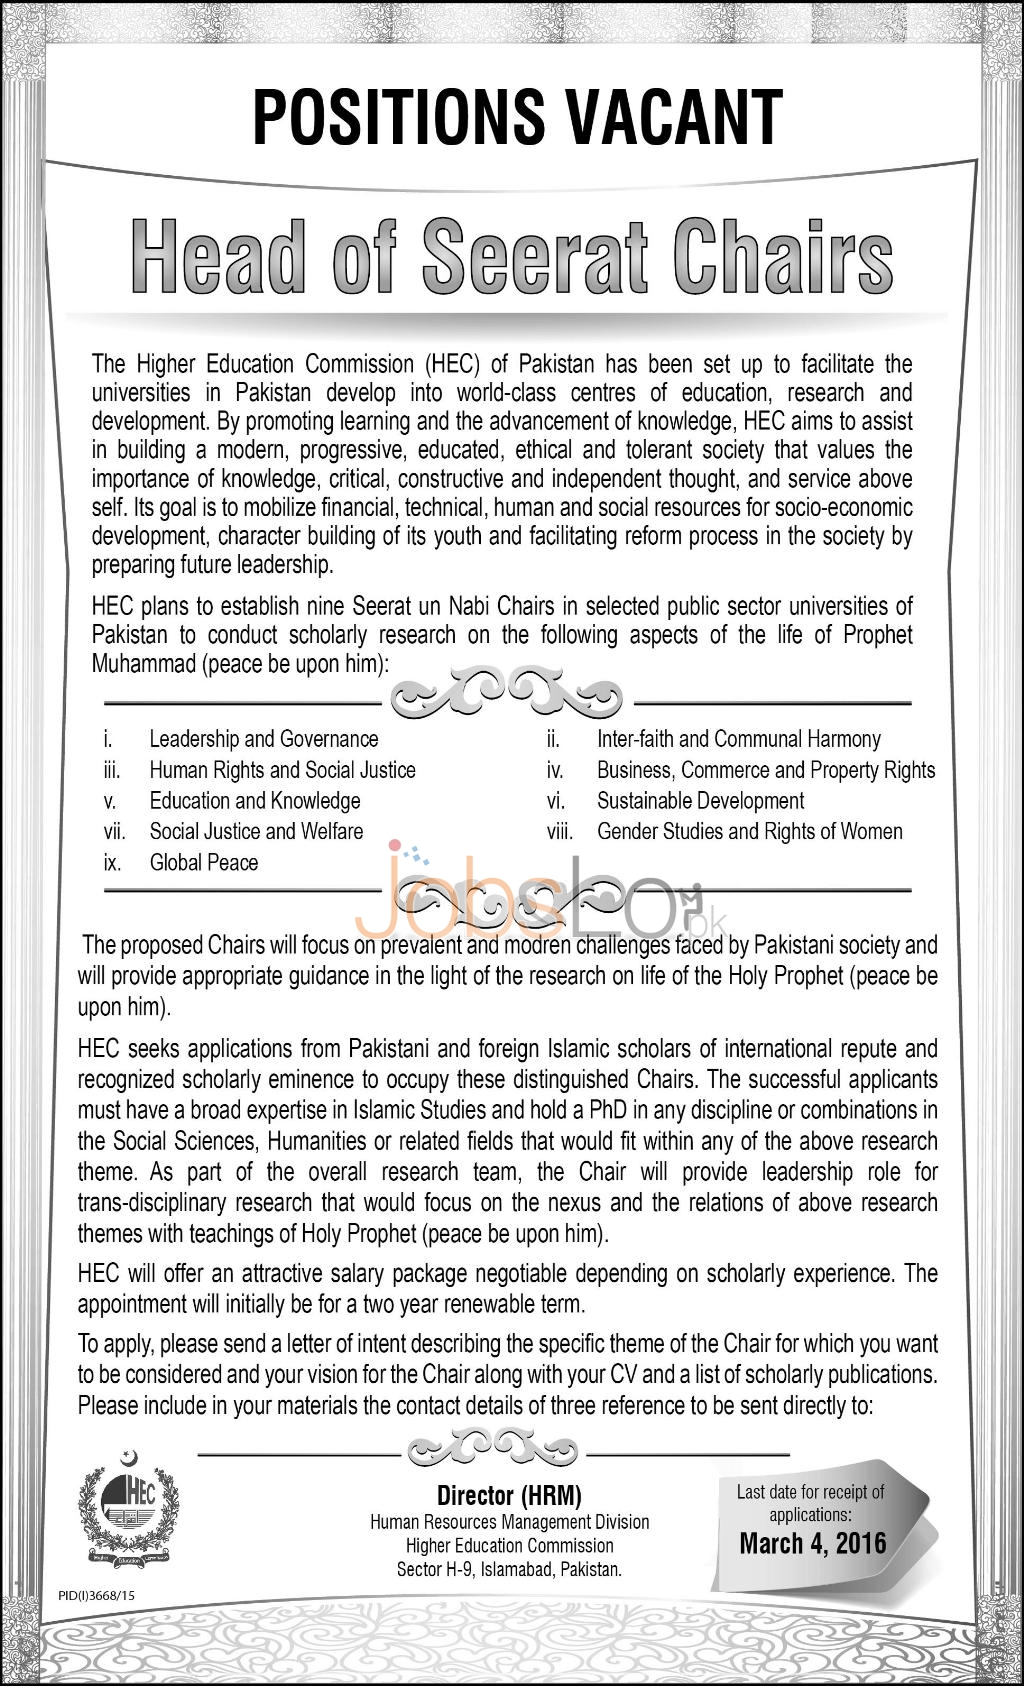 Head of Seerat Chairs 2016 Recruitment Offers